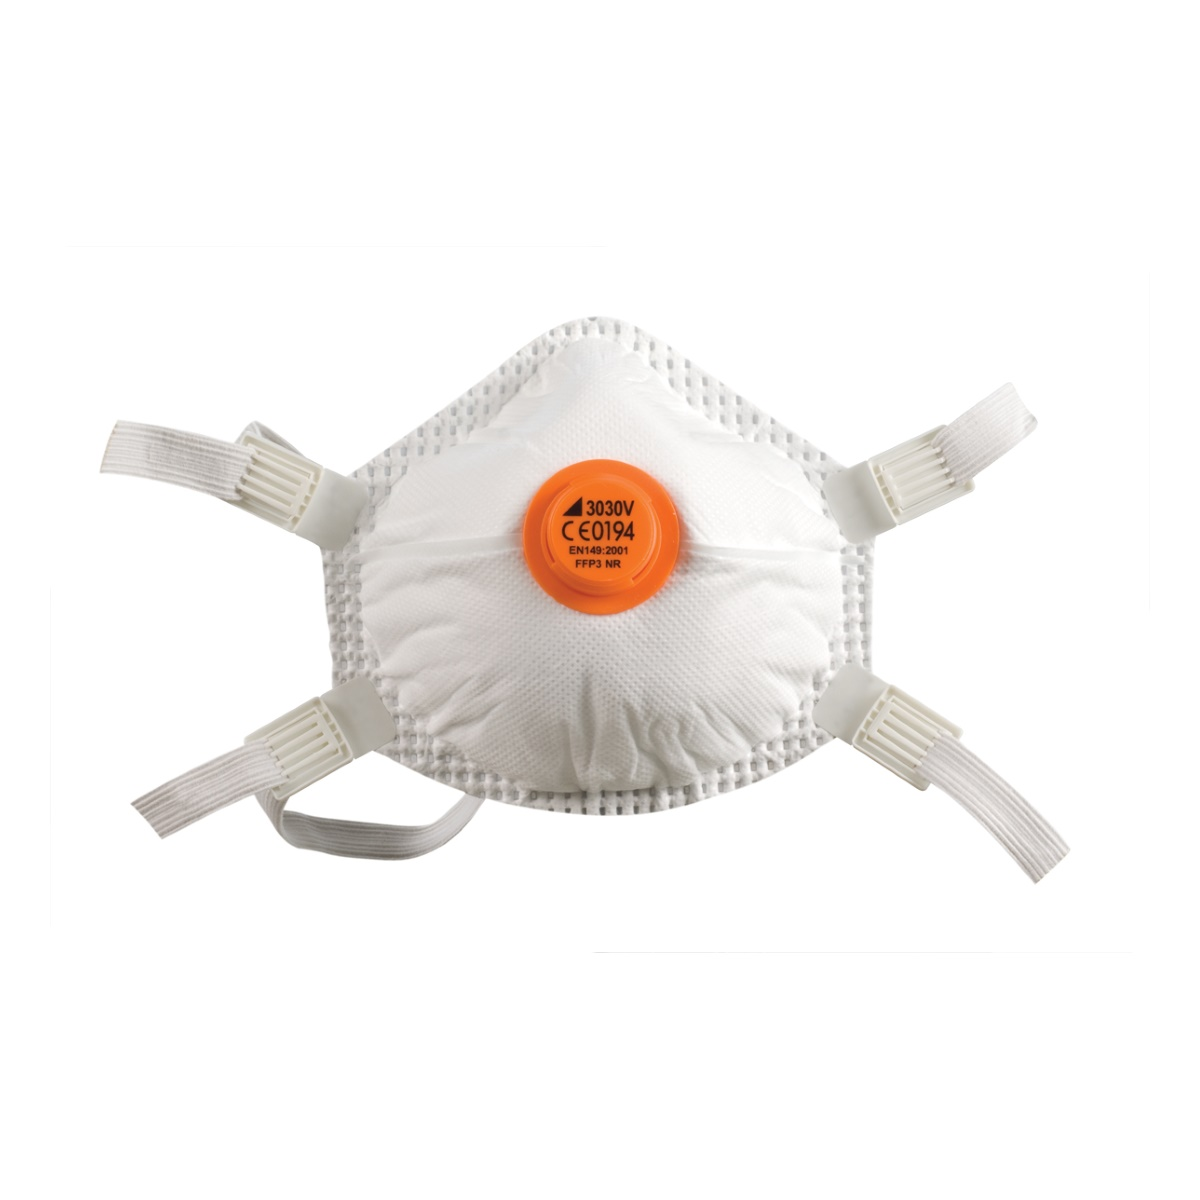 Betafit FFP3 Valved Respirators Box of 5Betafit FFP3 Valved Respirators Box of 5